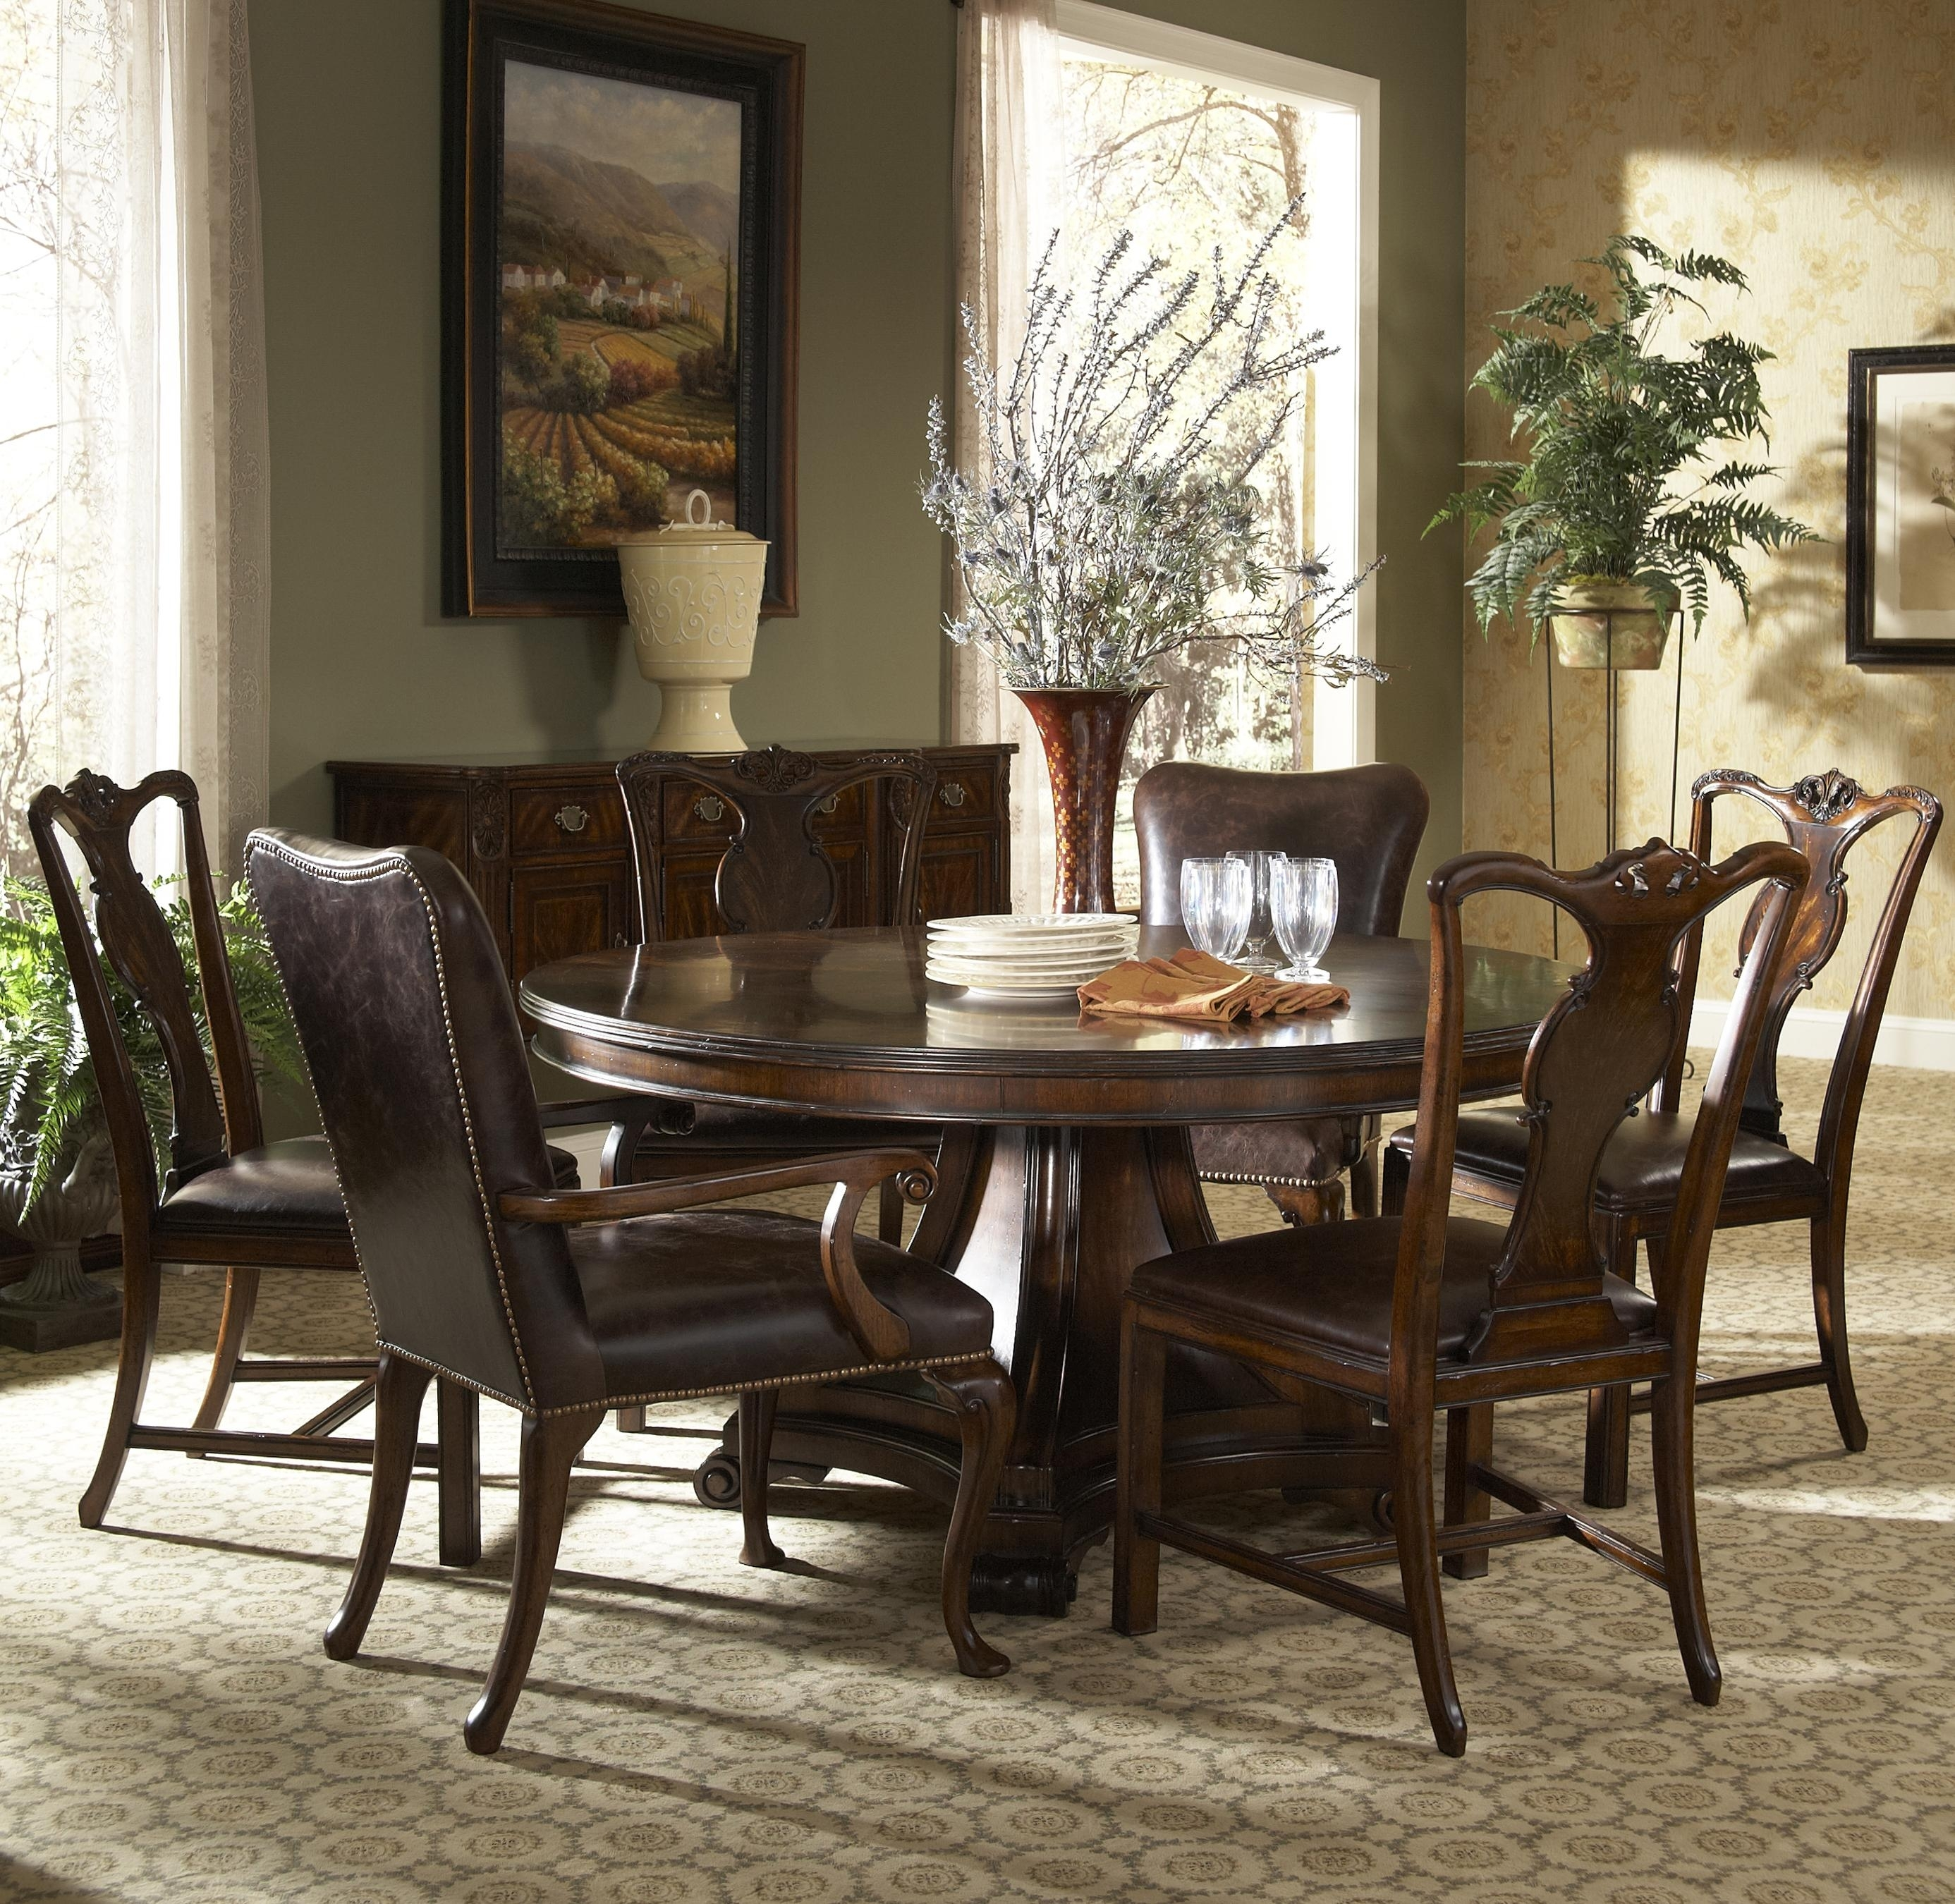 7 Piece Round Dining Table With Splat Back Dining Side Chairs And For Most Recent Parquet 7 Piece Dining Sets (View 10 of 20)